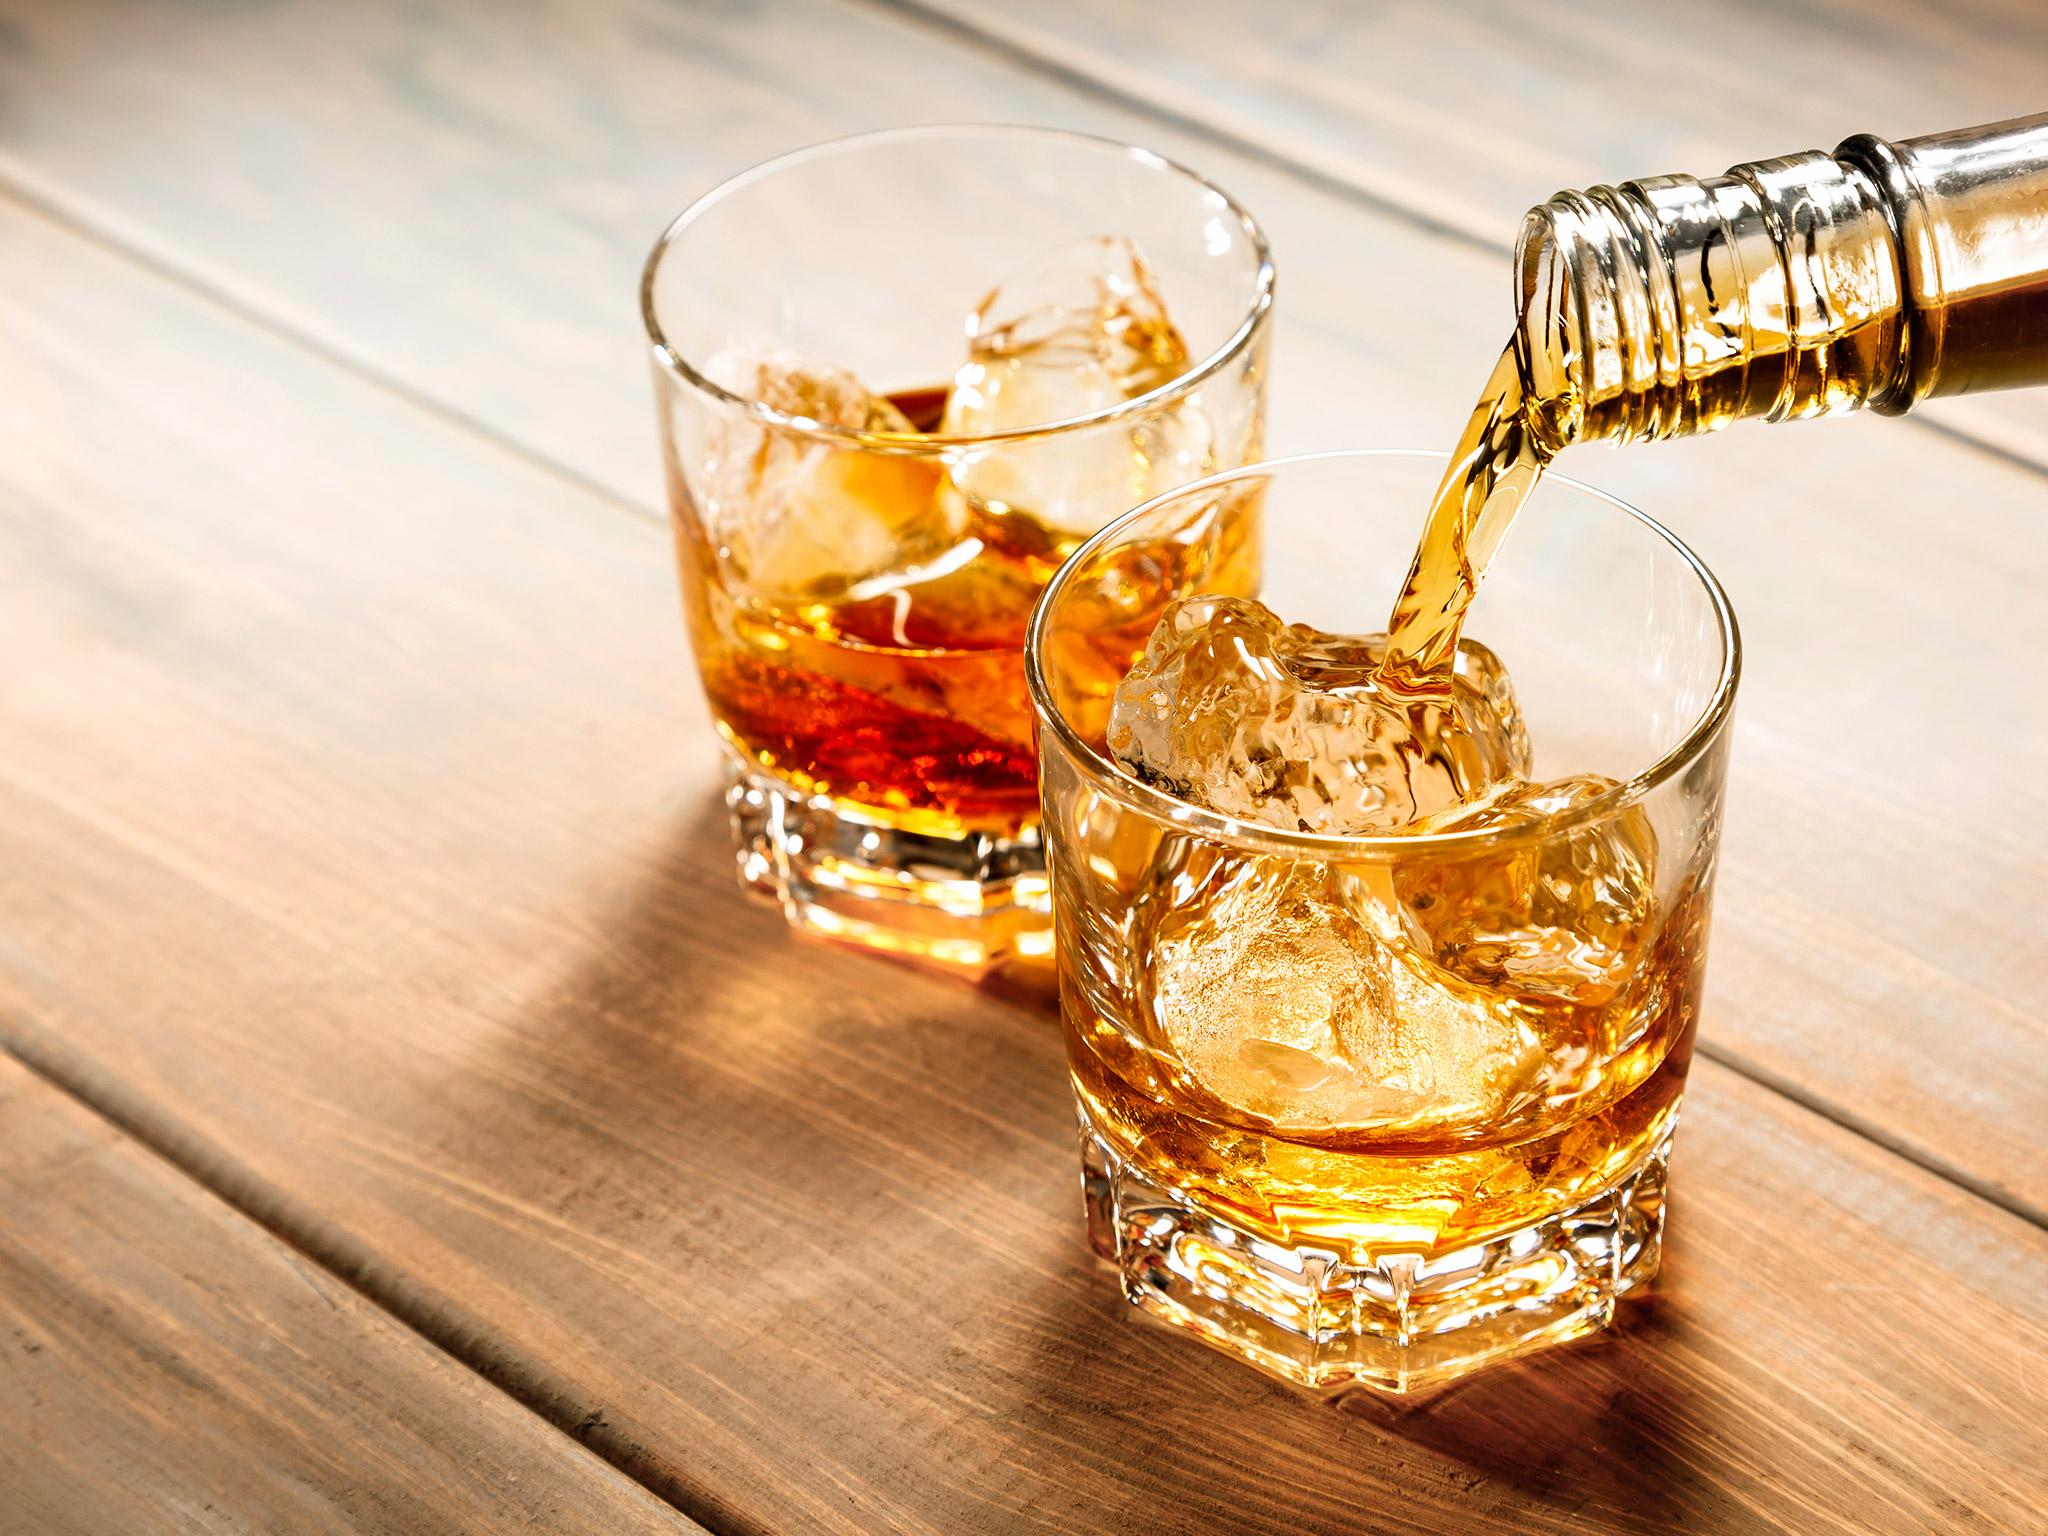 When is it ok to drink whisky with ice? Anthony Bourdain reveals his golden rule